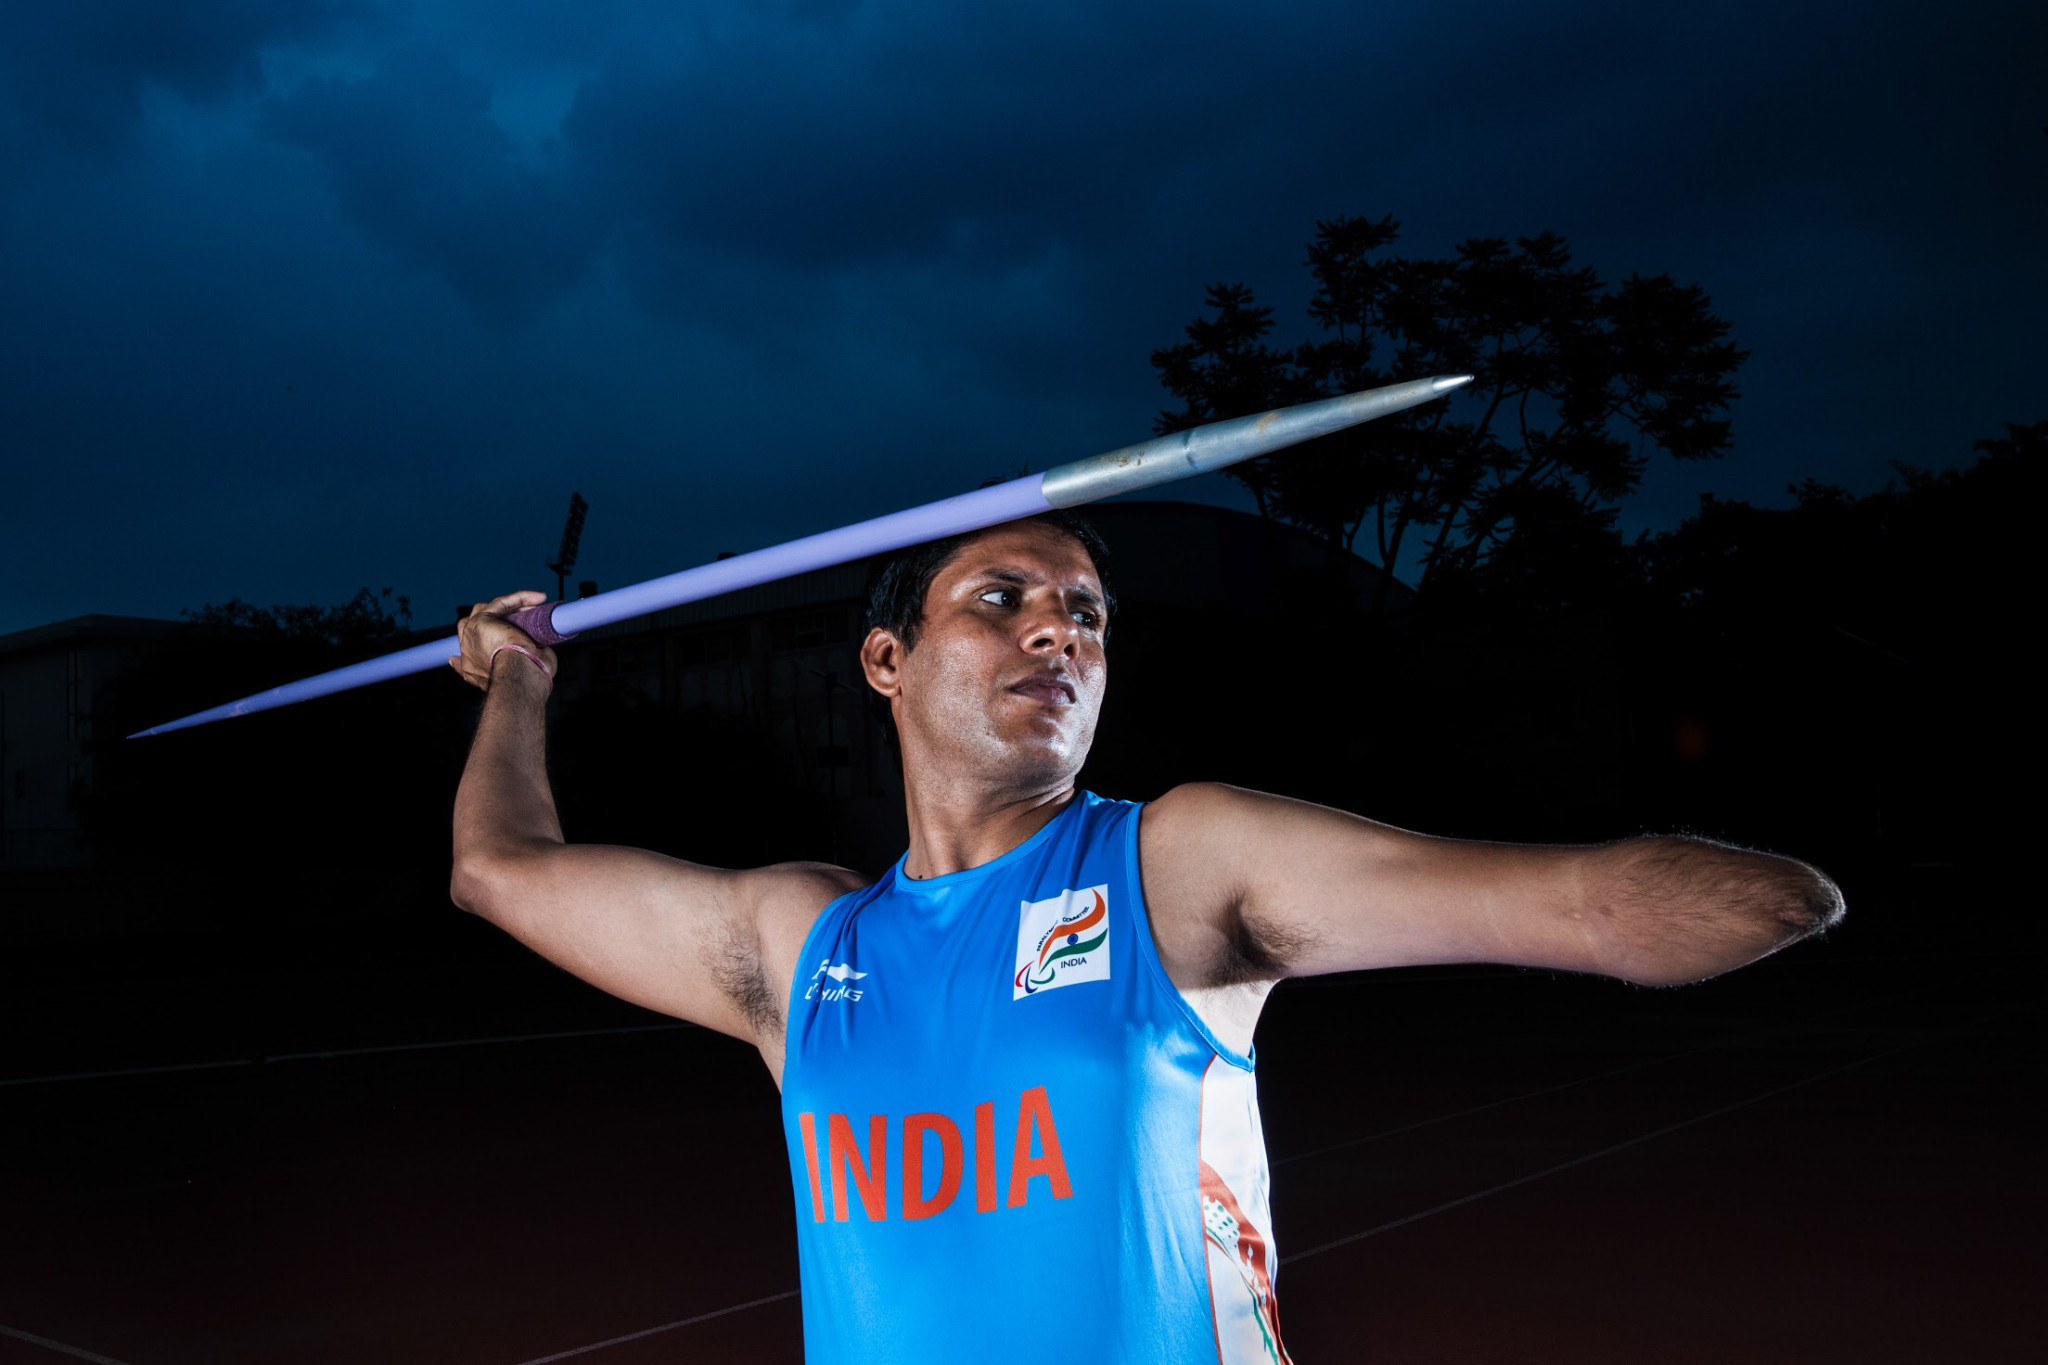 India aiming for six javelin medals at Tokyo 2020 Paralympics